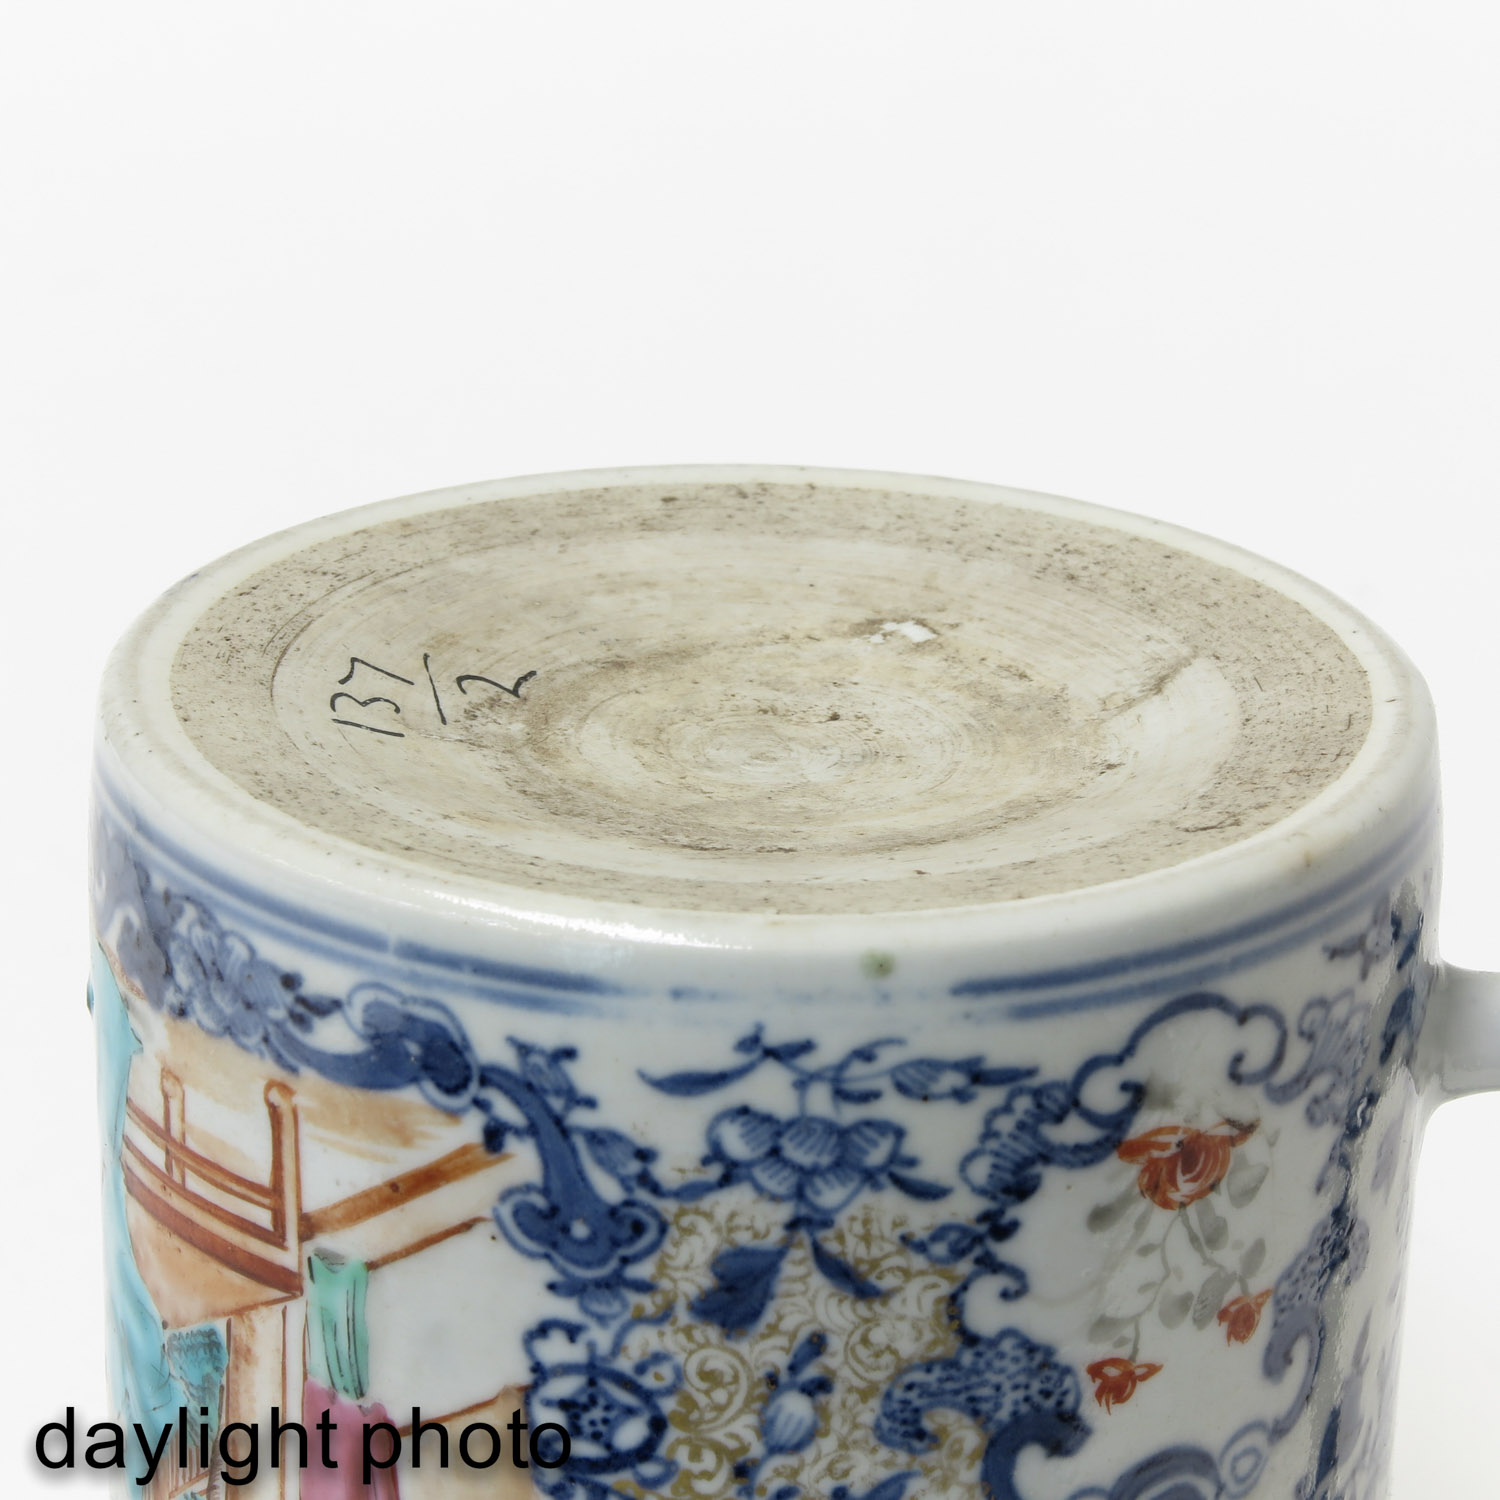 A Polychrome Decor Mug - Image 8 of 10